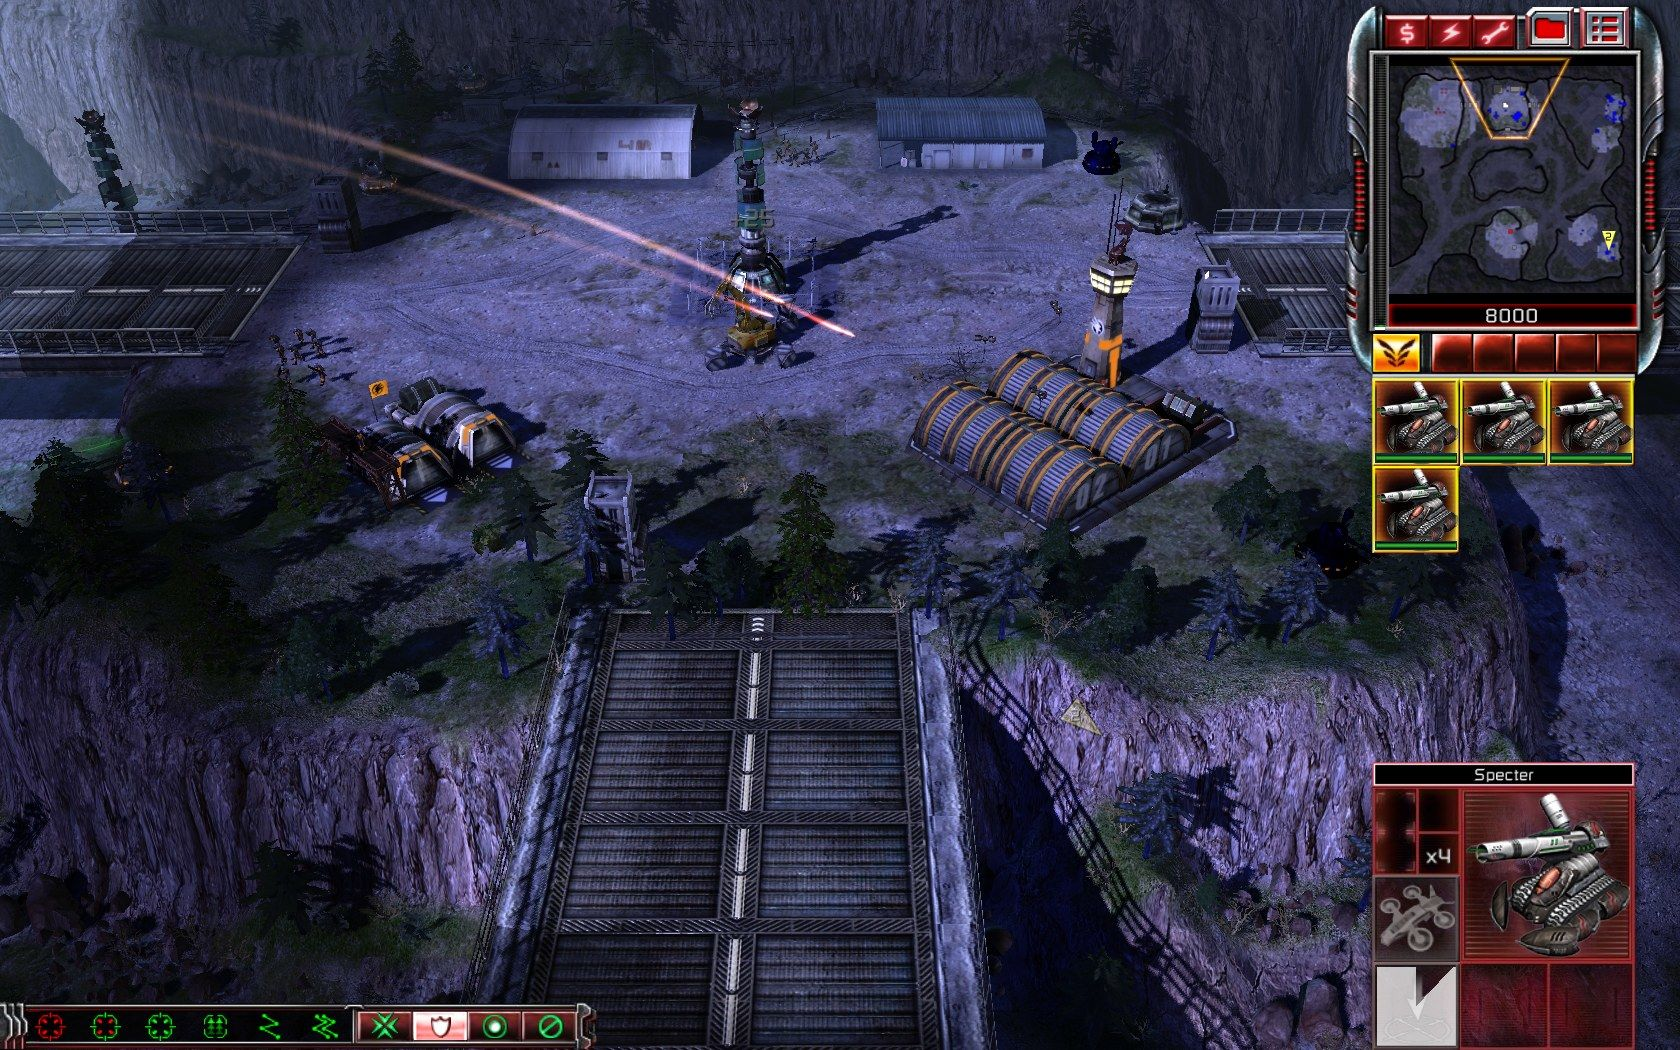 Command & Conquer 3: Kane's Wrath Windows Latest Nod artillery can fire from quite a distance.